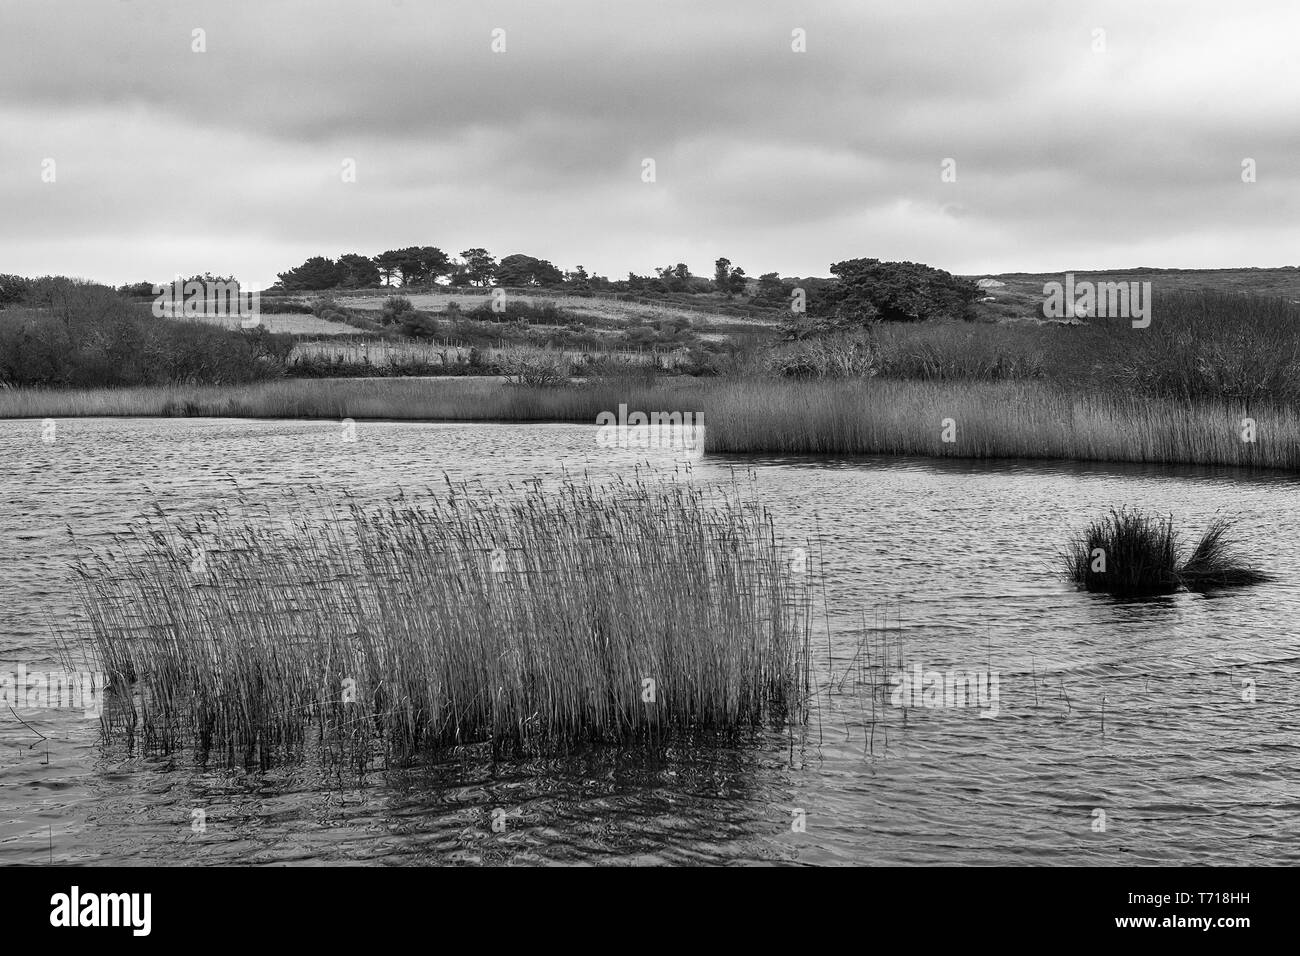 Porth Hellick Pool from the Higher Moors Nature Trail, St. Mary's, Isles of Scilly, UK: black and white version - Stock Image